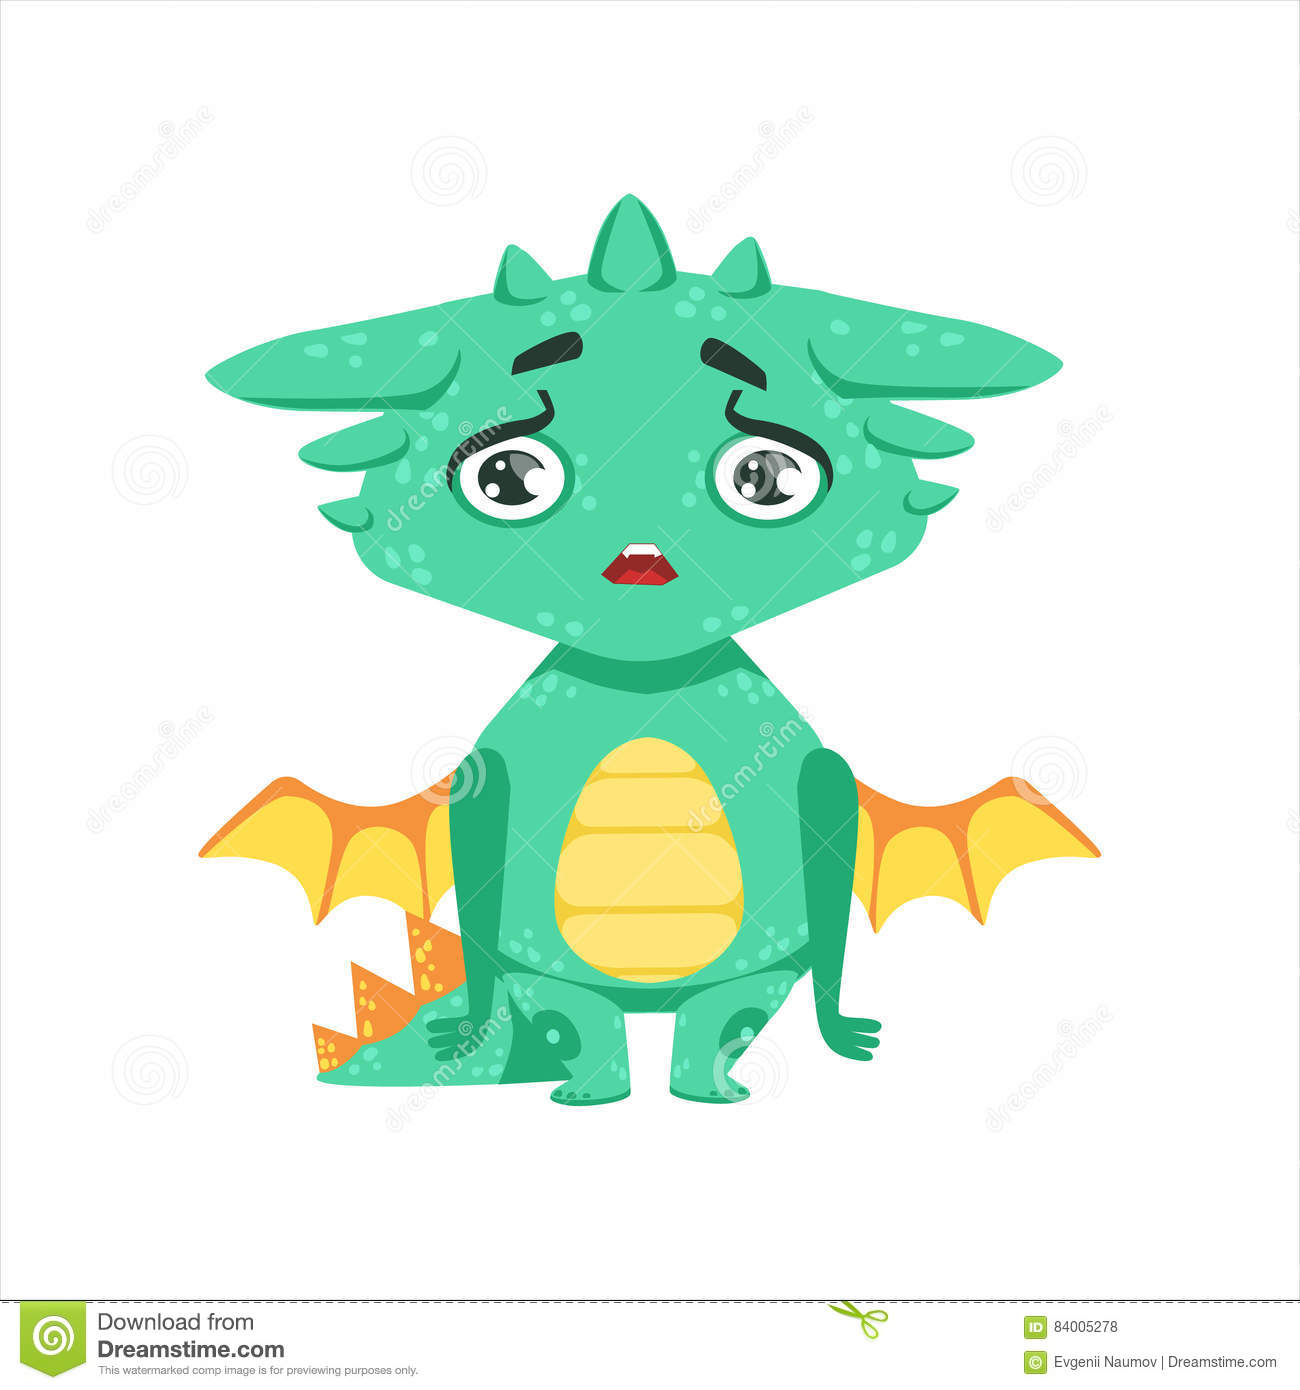 Wenig Anime Art Baby Dragon Upset And Disappointed Cartoon Charakter Emoji Illustration Vector Kindische Emoticon Zeichnung Mit Fantasie Drache Ahnlichem